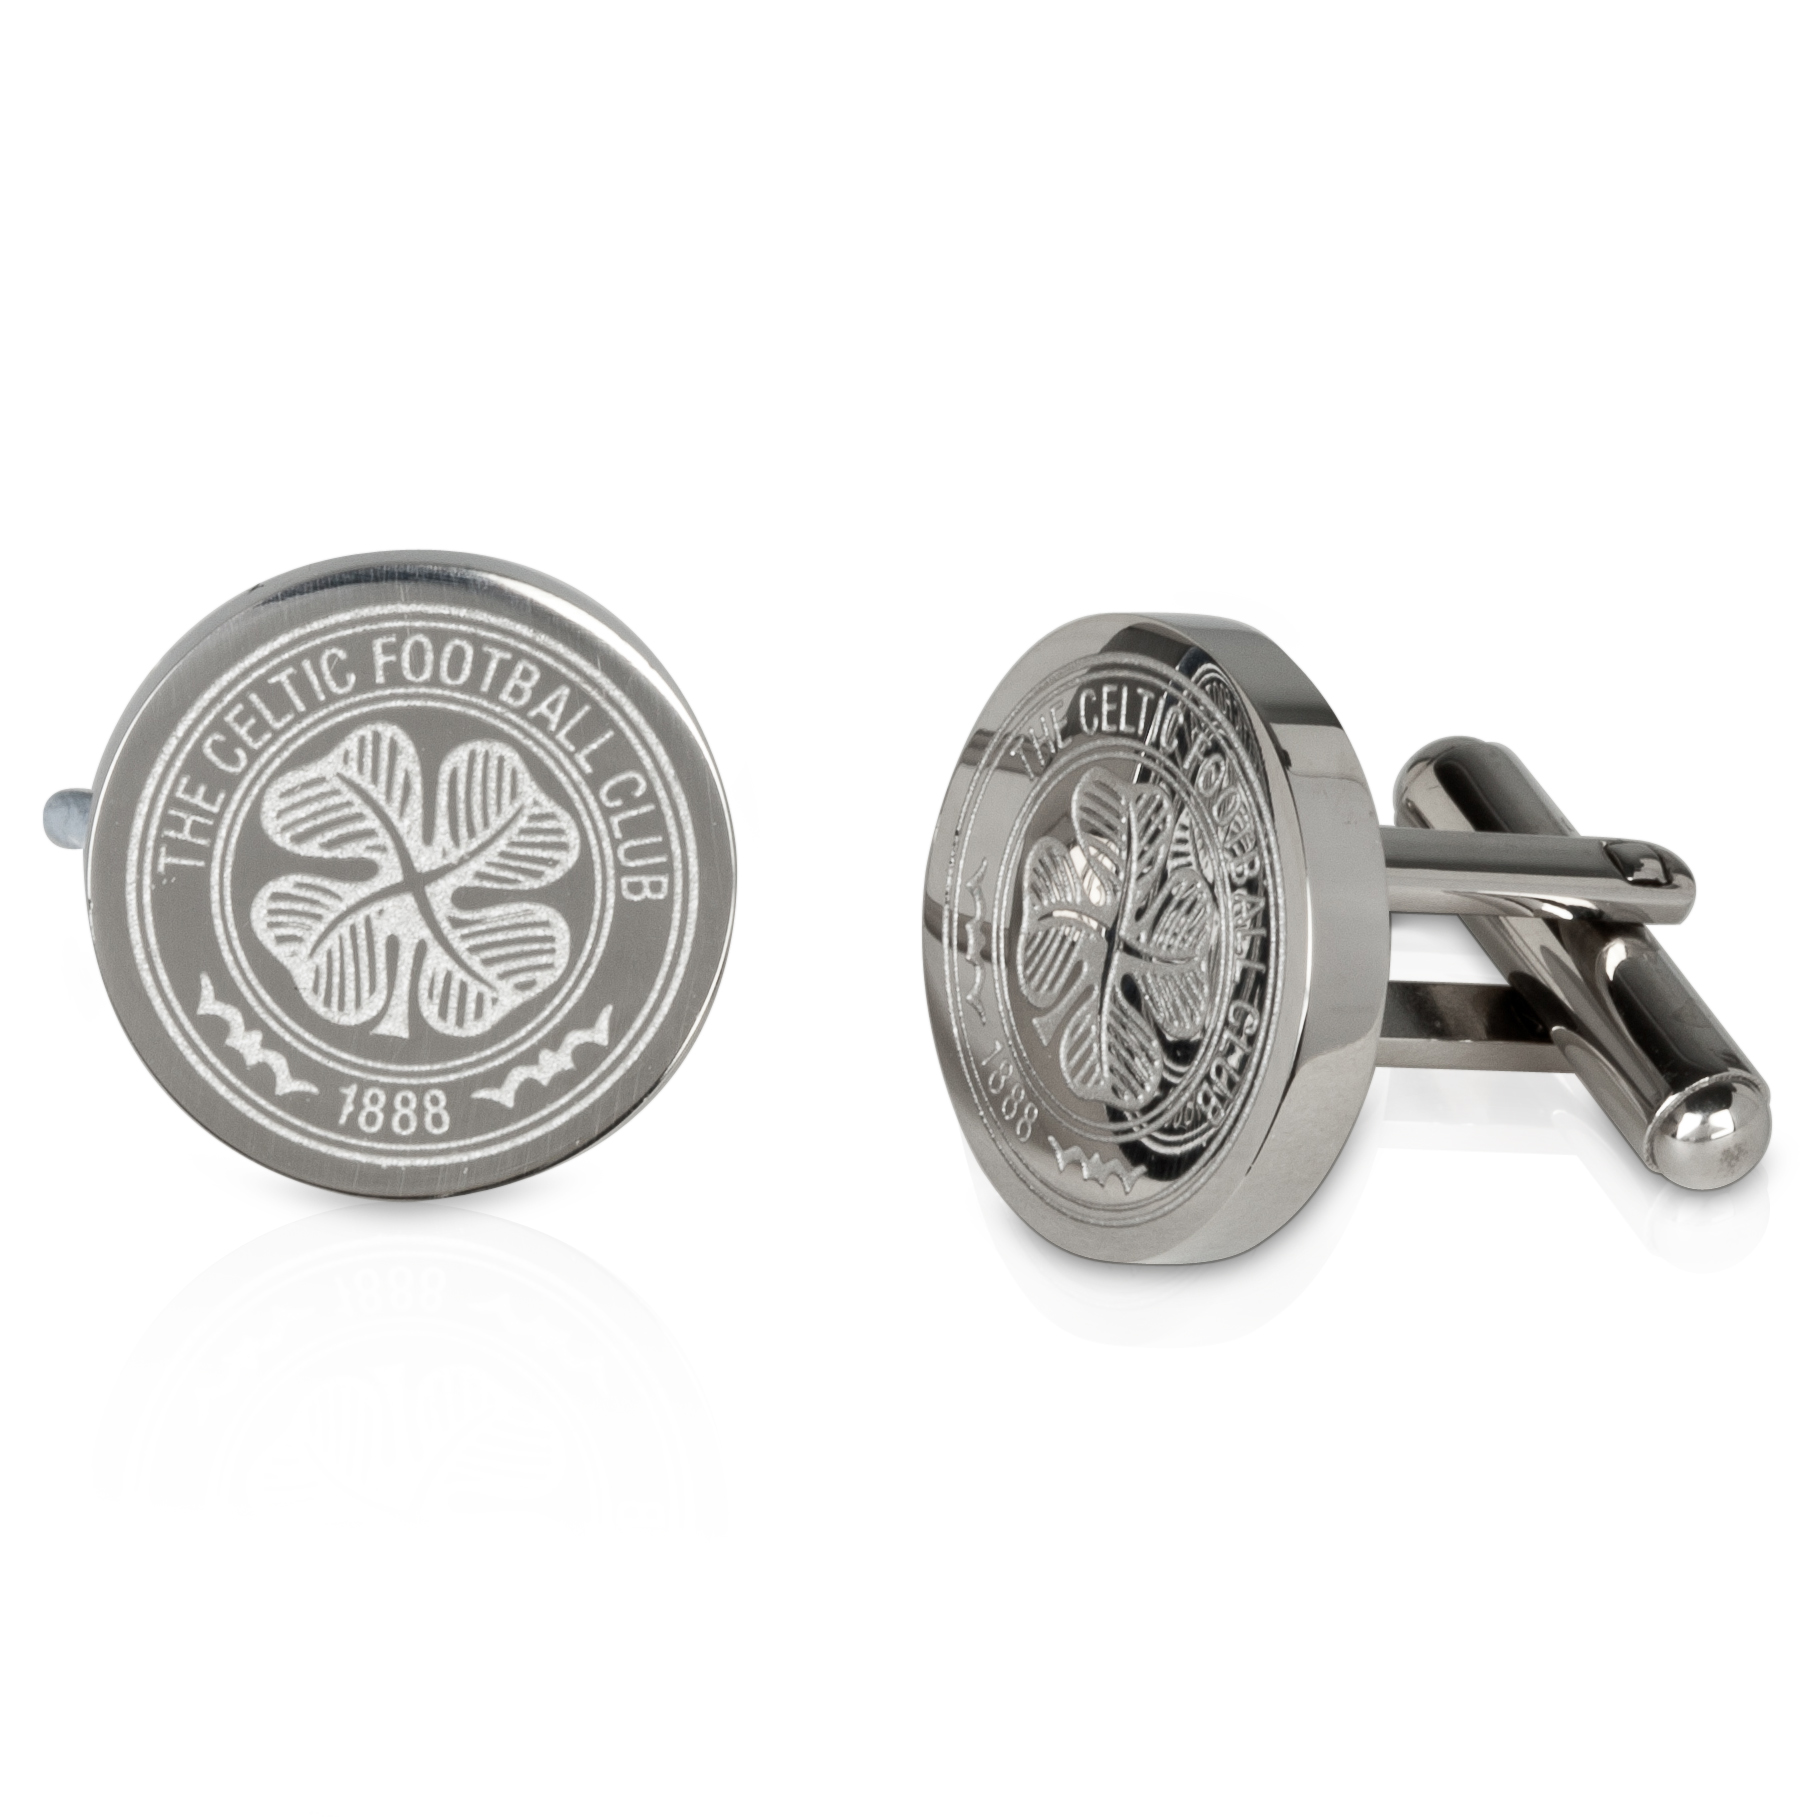 Celtic Cut Out Crest Cufflinks - Stainless Steel